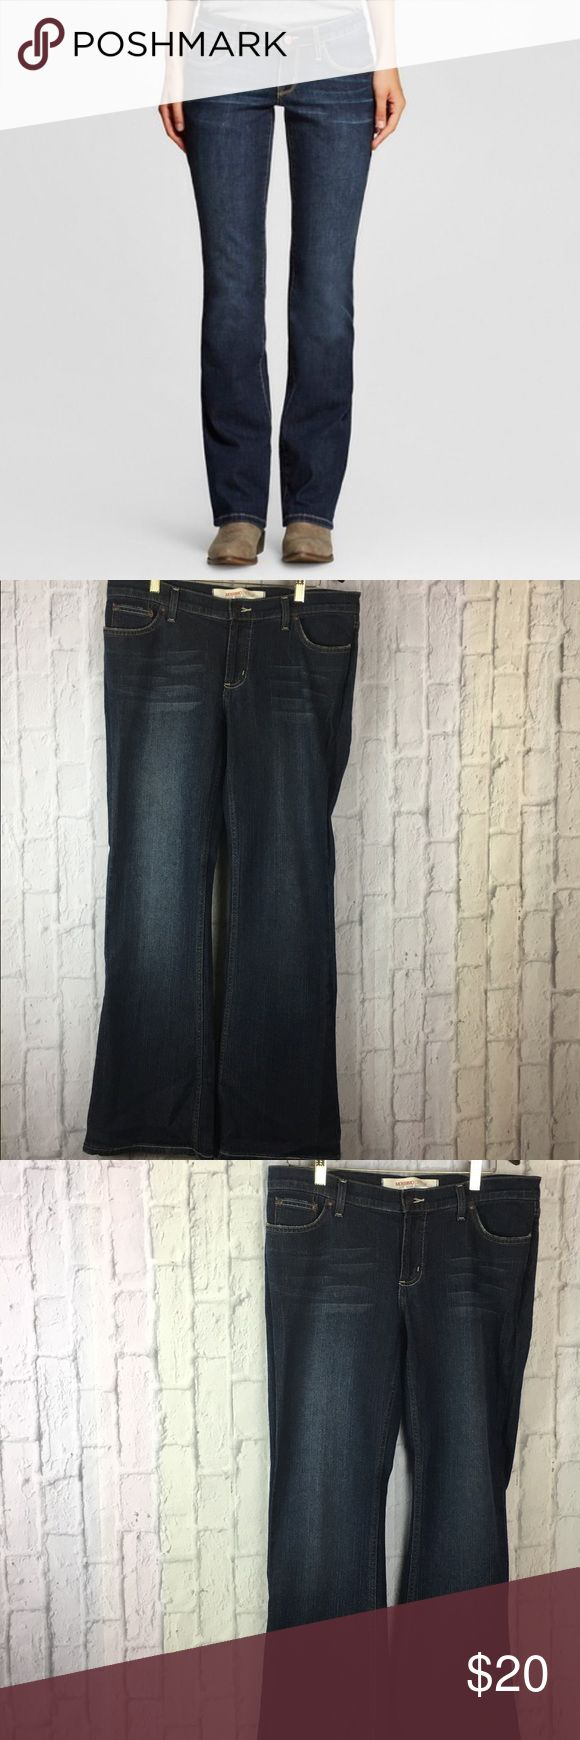 """✨Mossimo Boot Cut Jeans✨ Get a modern, classic look with Women's Low-Rise Bootcut Jeans from Mossimo. These women's jeans have an everyday look with a tried-and-true fit. They have a low-rise waistline with a slim leg and bootcut leg opening. Plus, they're stretchy for a comfy feel. Pair these bootcut jeans with a tee and cardigan for a casual outfit  YOU ARE BUYING: Women's Jeans   STYLE: Bootcut  COLOR: Dark Blue  SIZE: 11  CONDITION: NWOT   MEASUREMENTS ⤵️  41"""" length 19"""" hips 31"""" inseam…"""